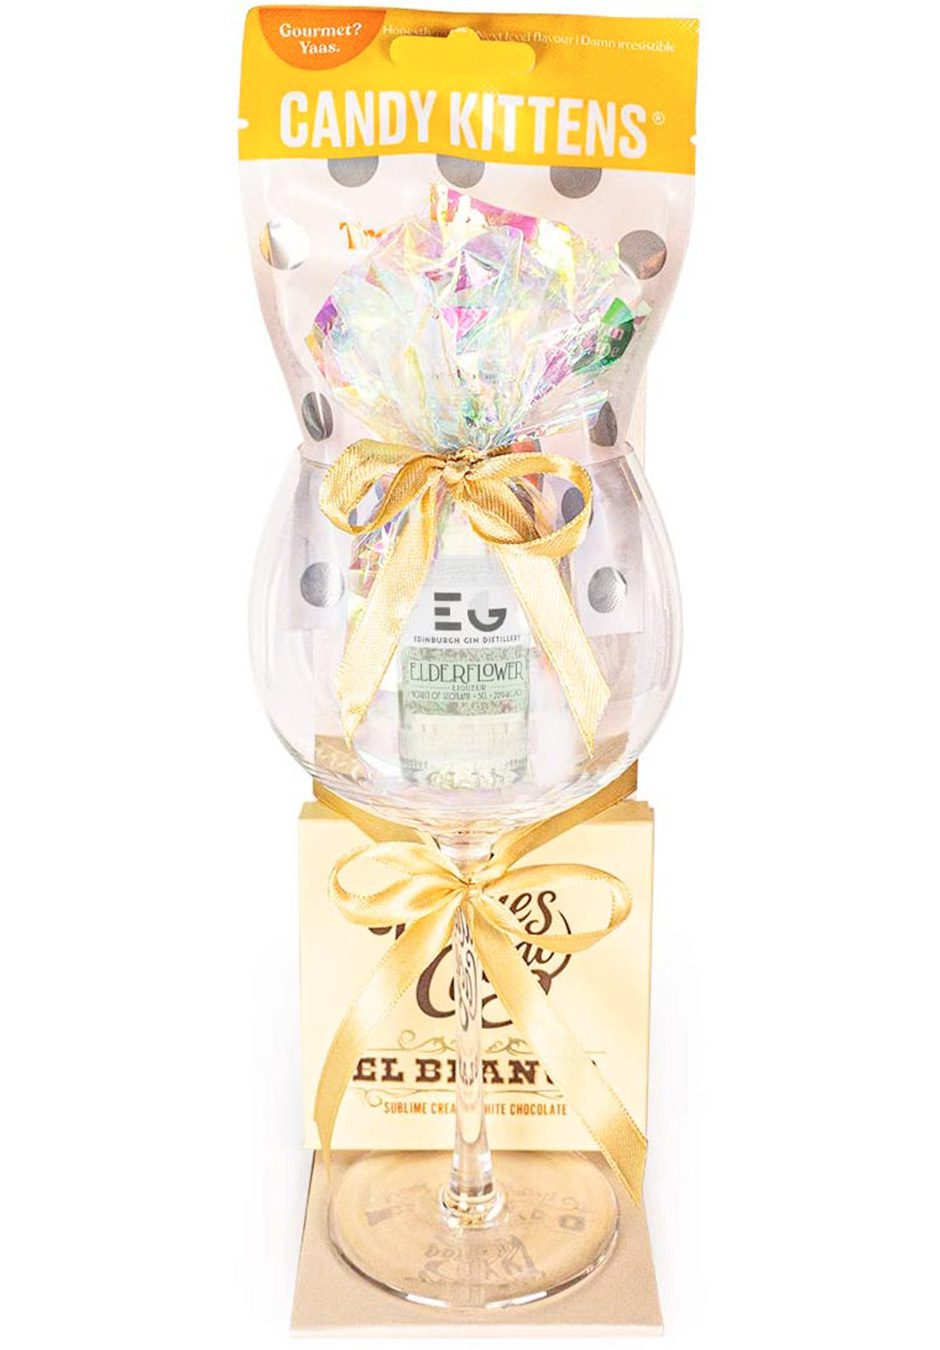 Elderflower Edinburgh 5cl Gin | Candy Kittens | Willies Cacao | Sparkleware Gift Set | KeiCo Drinks